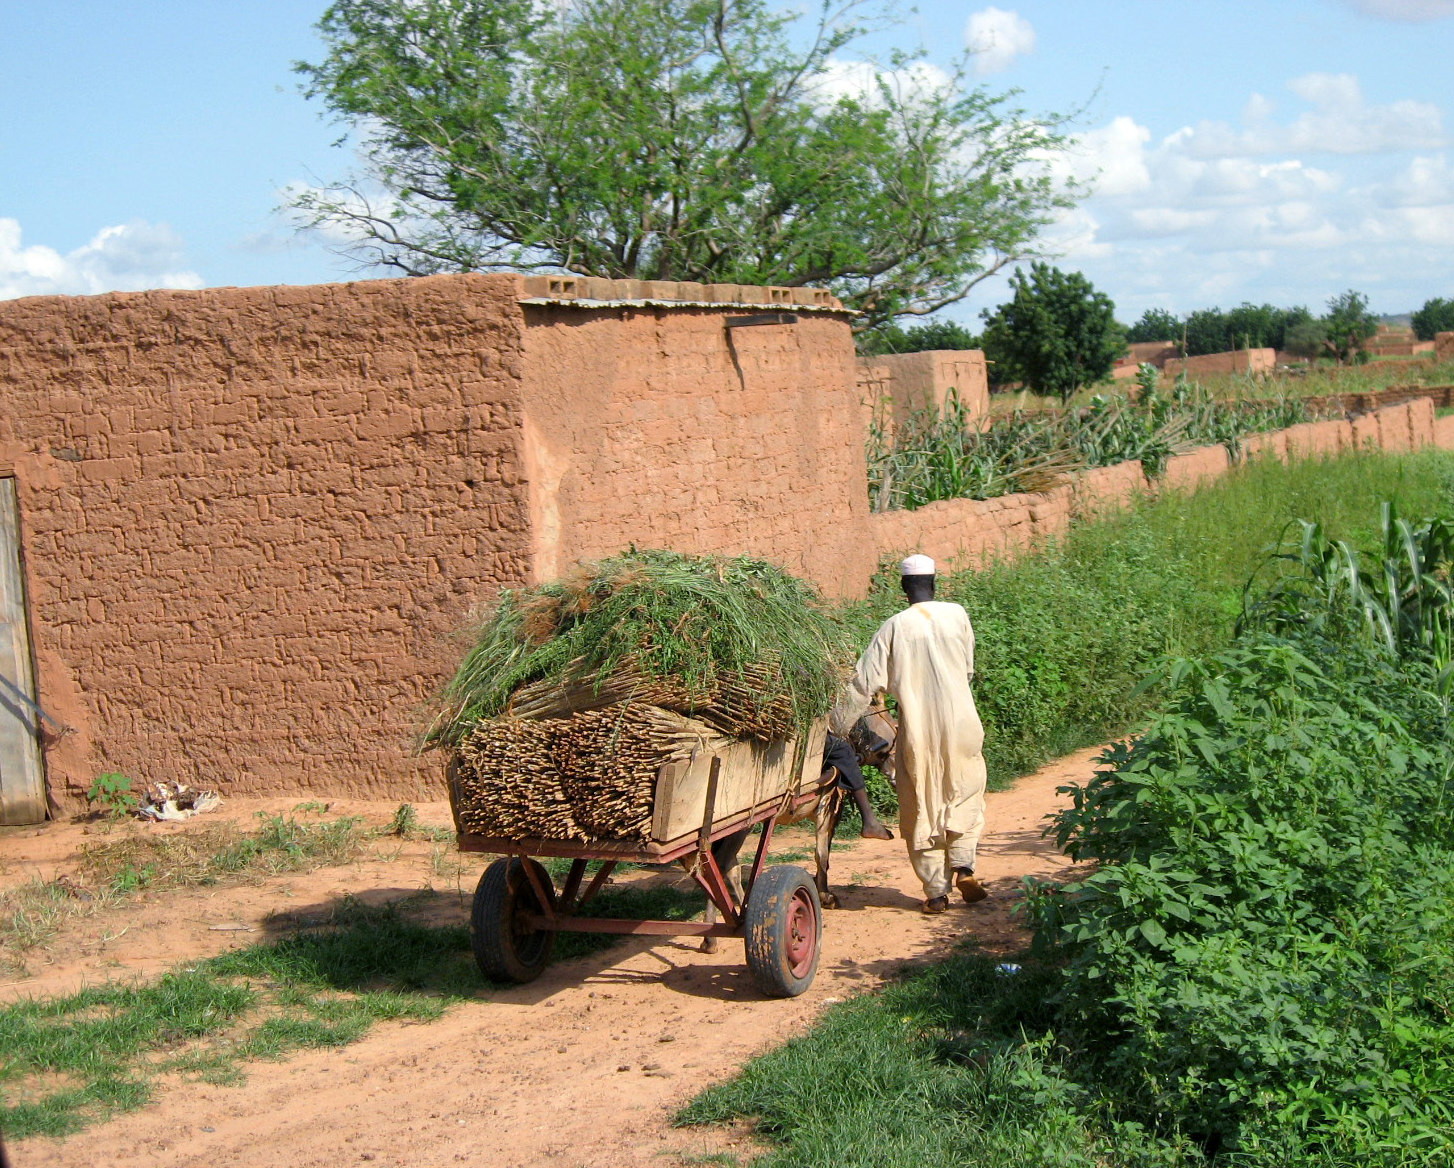 Community Based Disaster Risk Reduction in Niger